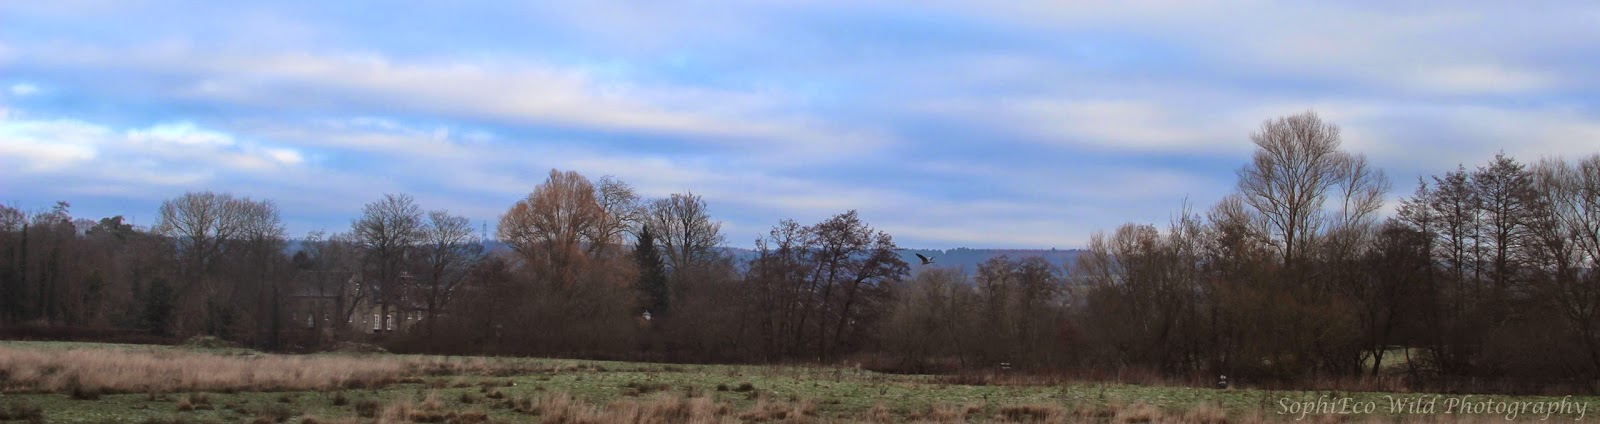 view of a line of alder and willow trees edging a rushy flood meadow, distant hills behind. Winter morning sunshine.